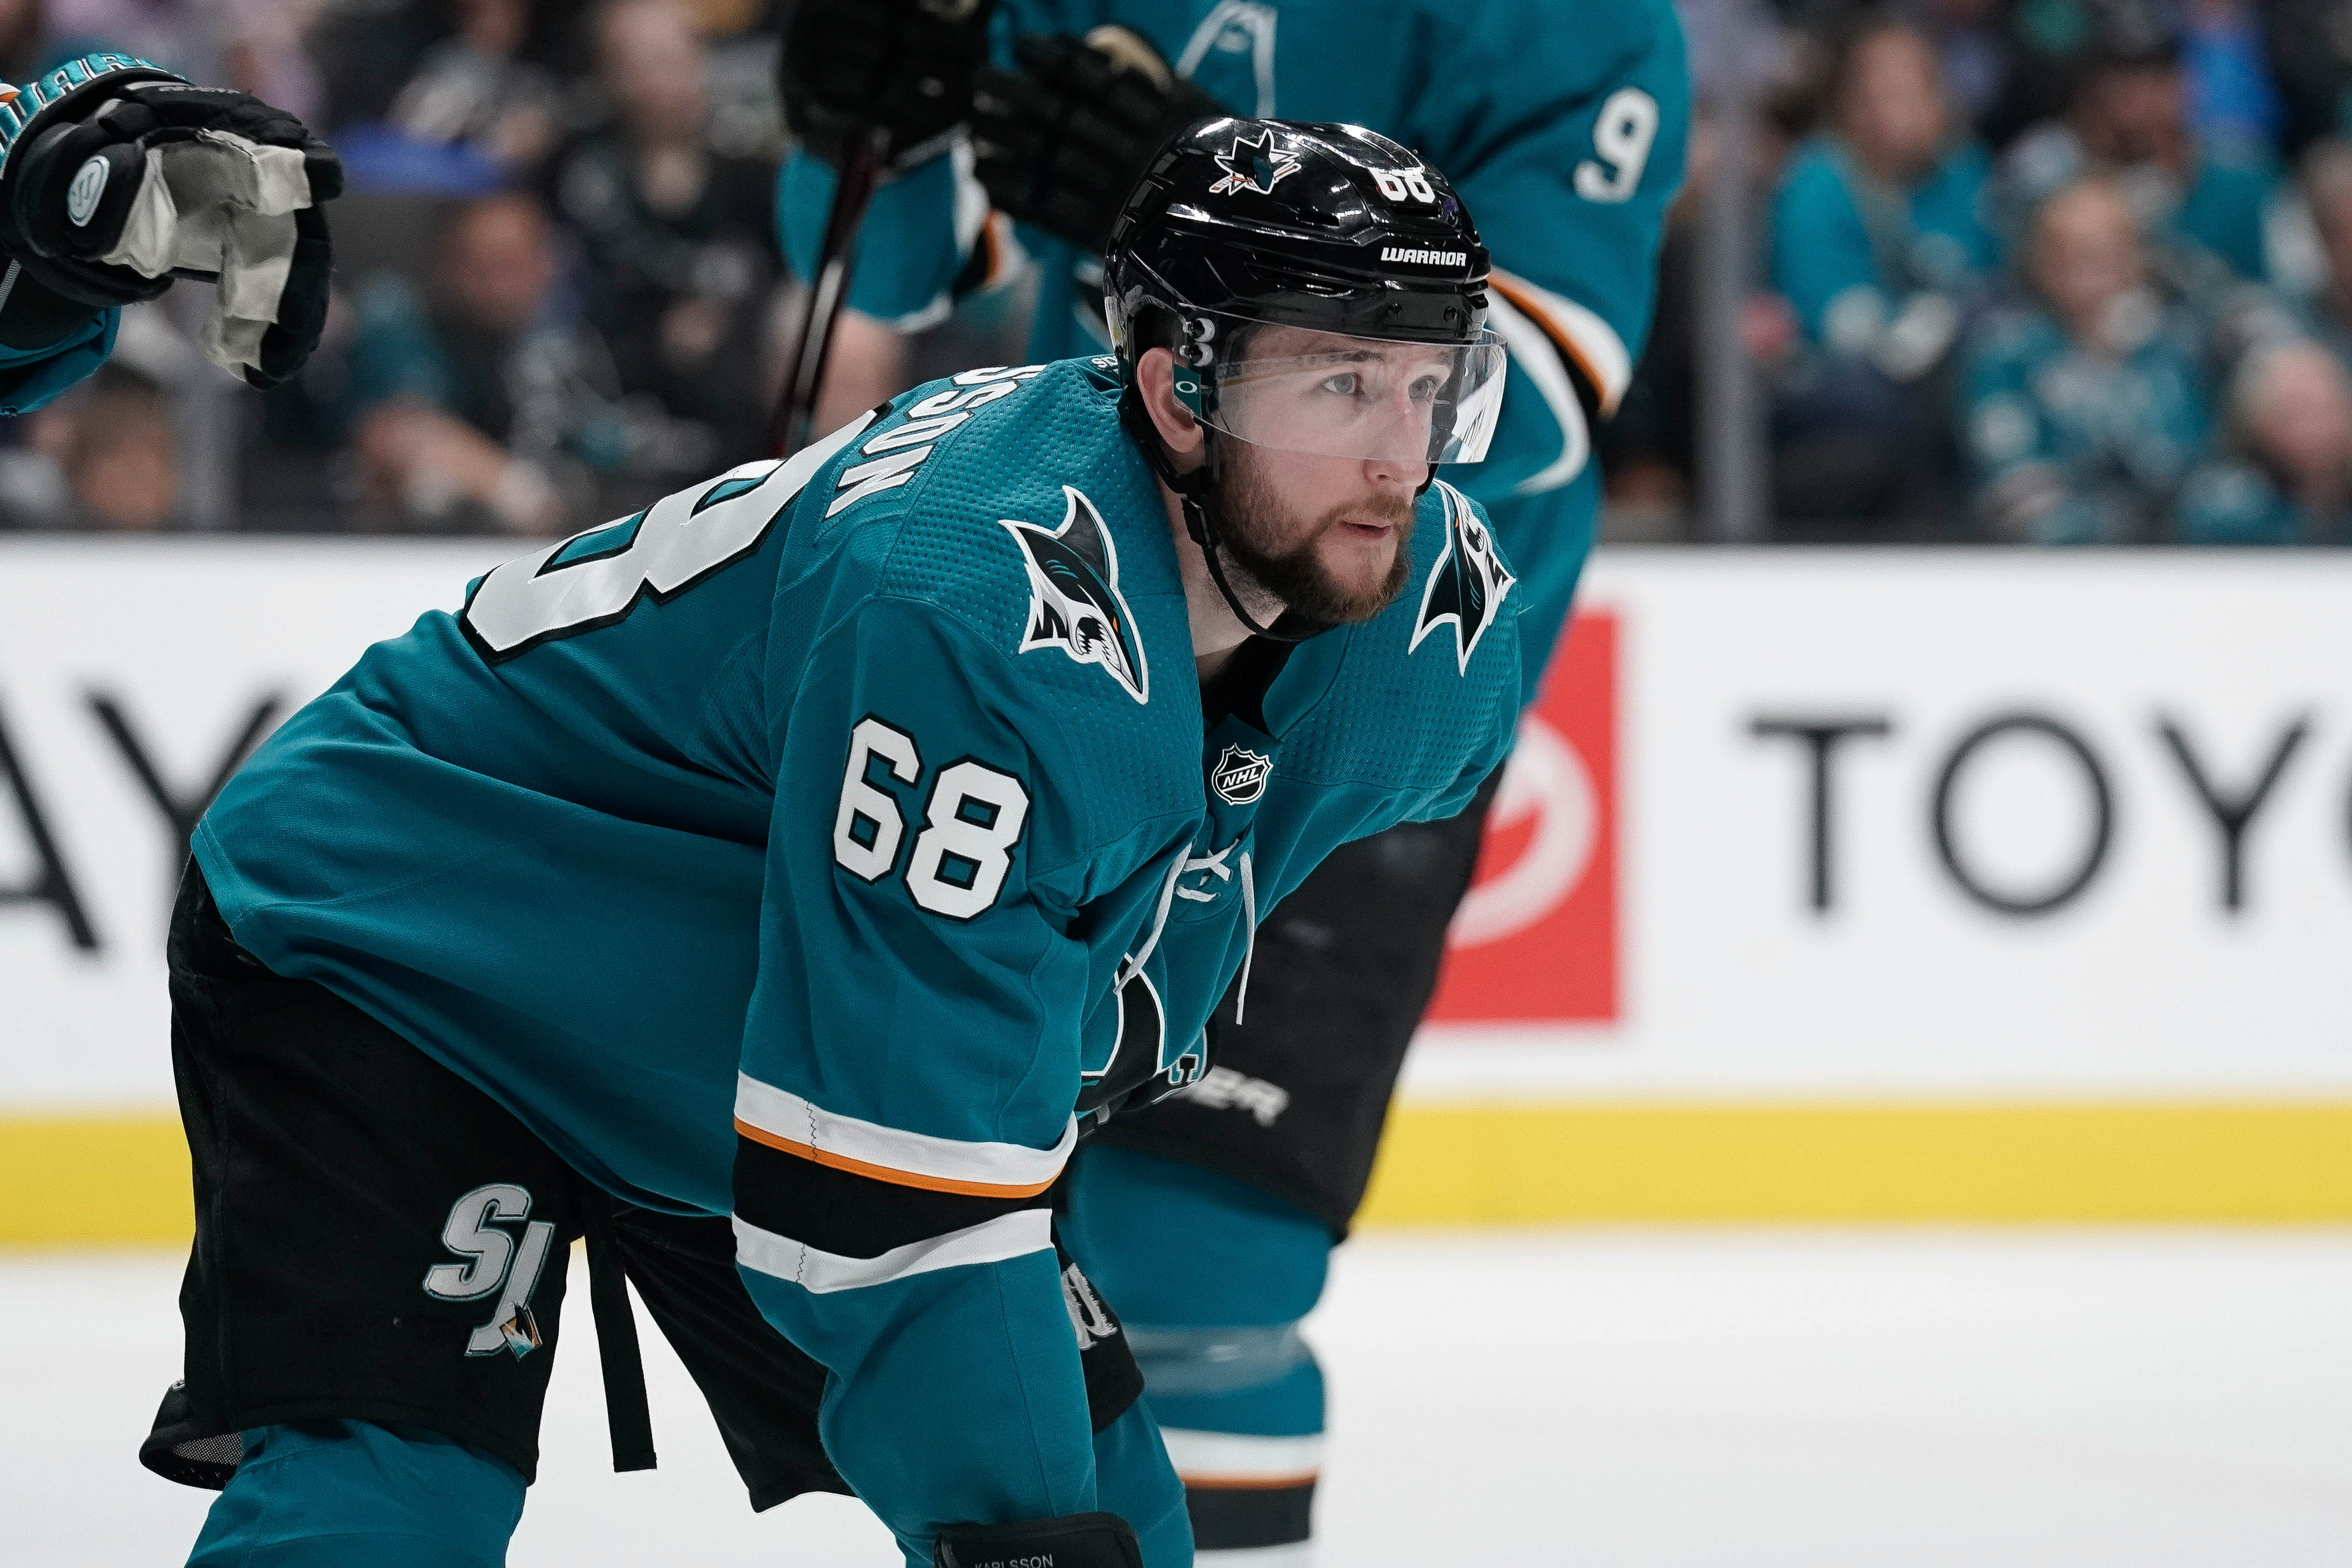 Apr 23, 2019; San Jose, CA, USA; San Jose Sharks center Melker Karlsson (68) prepares for the next play against the Vegas Golden Knights during the second period in Game 7 of the first round of the 2019 Stanley Cup Playoffs at SAP Center at San Jose.